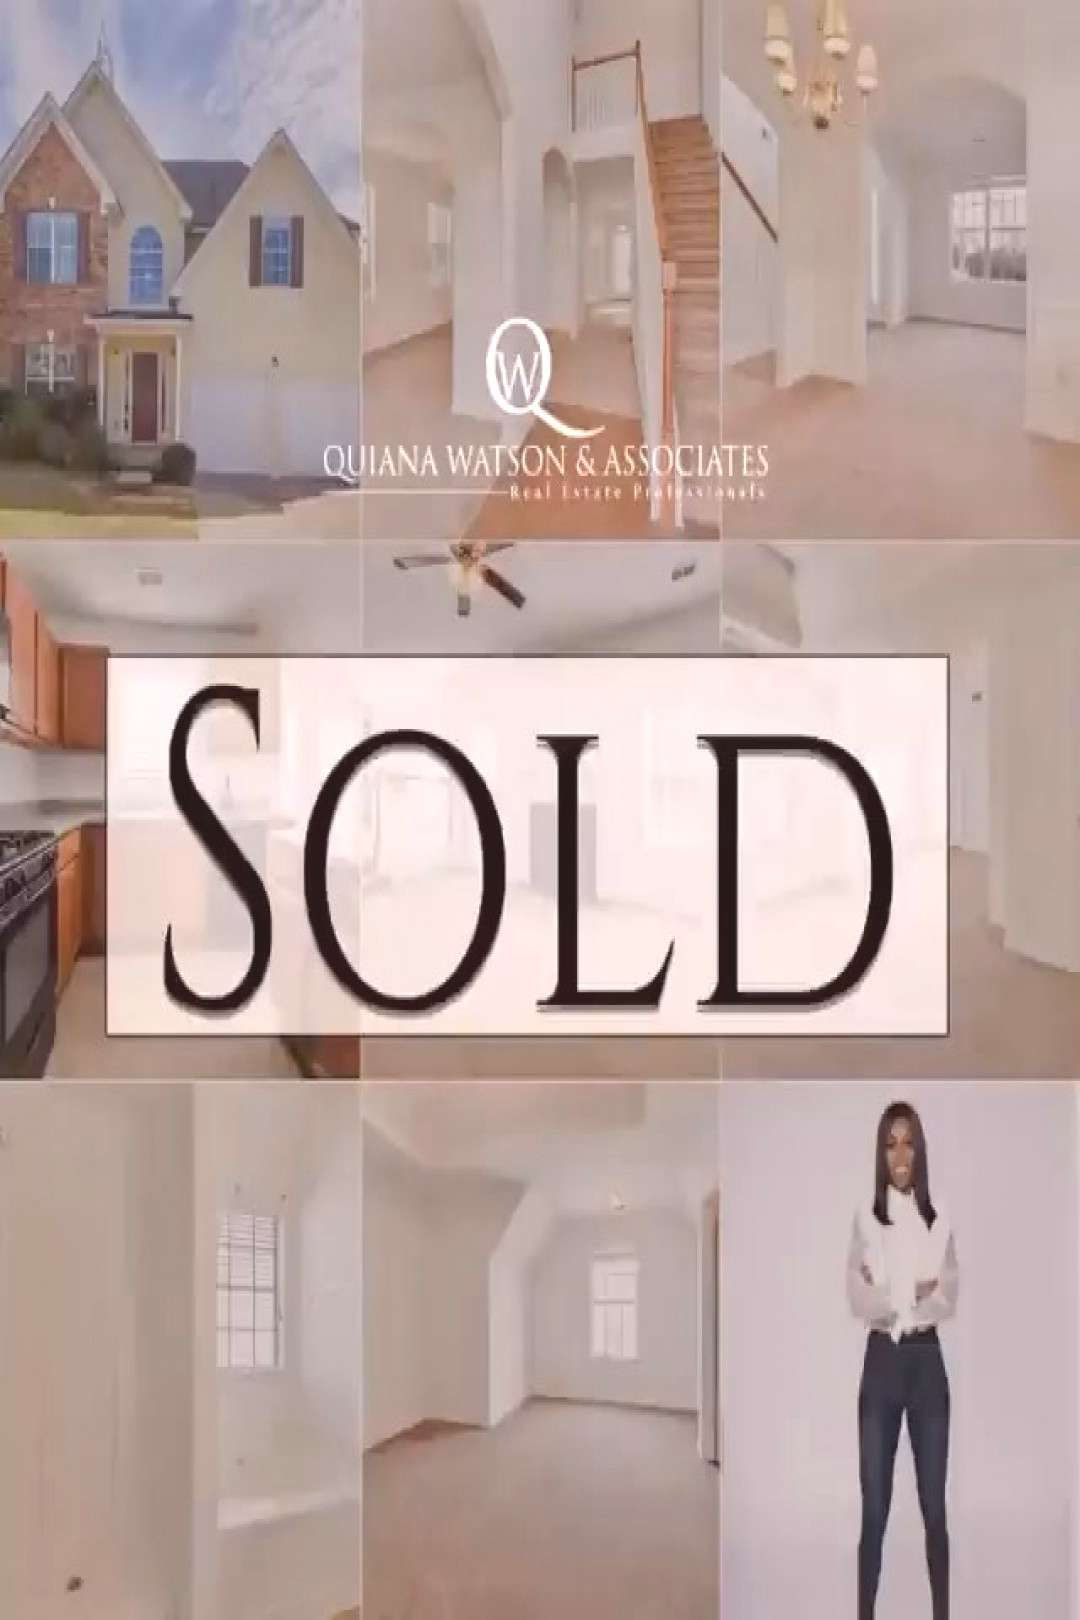 #homepurchase #repost #closed #sold #from #way #day #one #has #to #go #it Way to go !! #Repost ・・・ Sold & Closed From day one it has You can find Home purchase and more on our website.Way to go !! #Repost ・・・ Sold & Closed From day ...